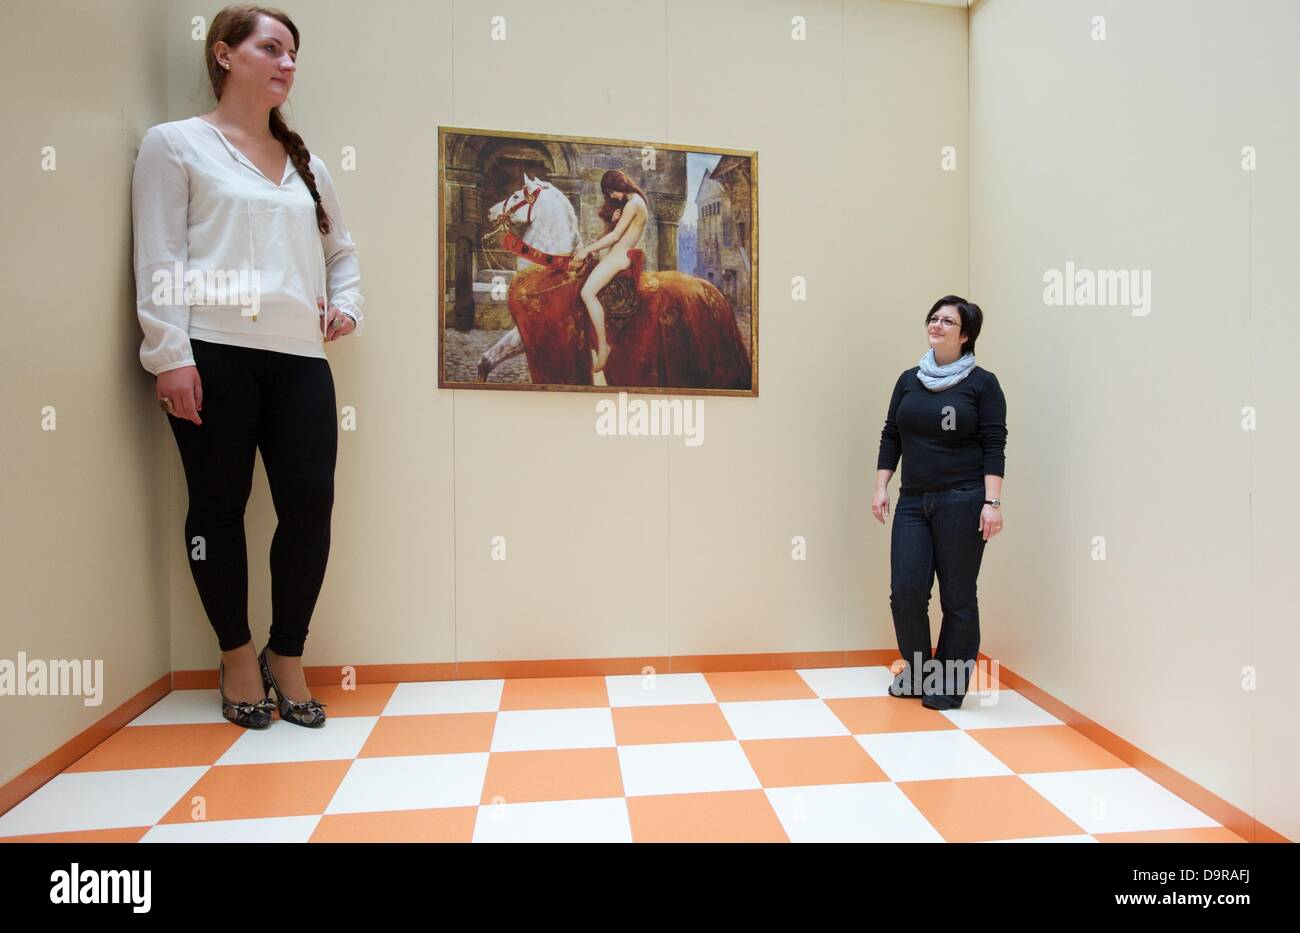 Ames Room Stock Photos & Ames Room Stock Images - Alamy